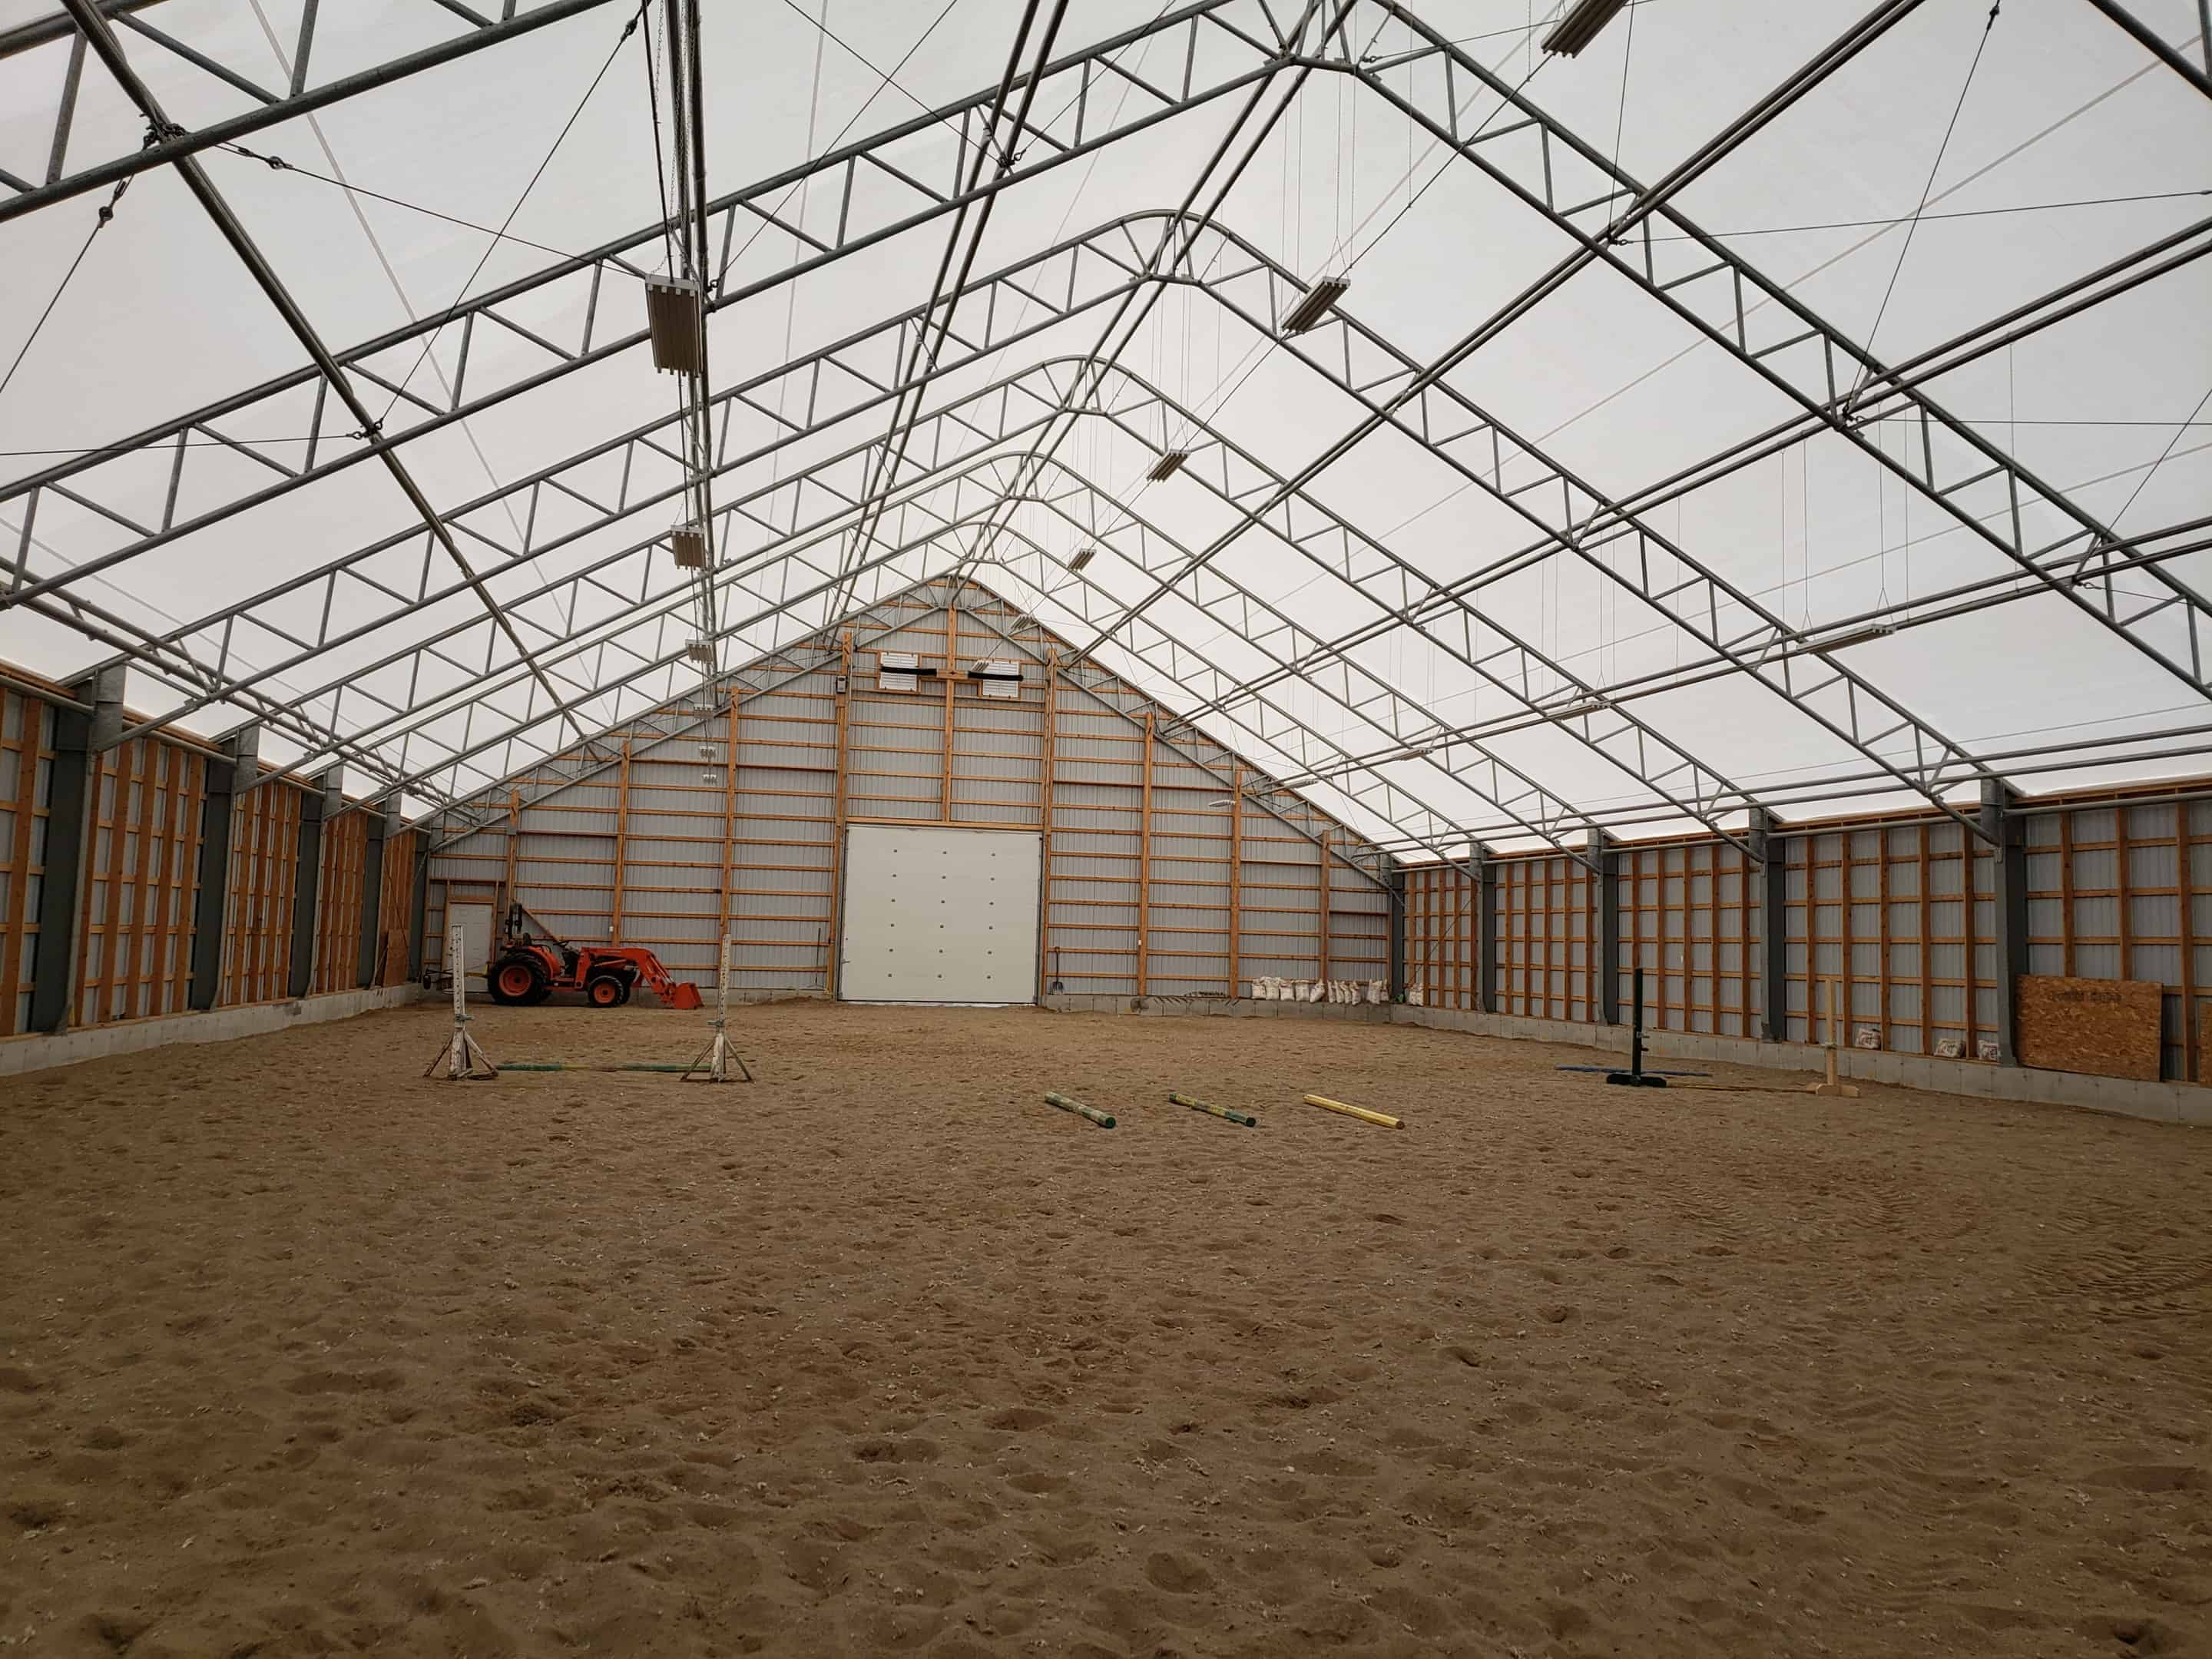 Over the Moon Farm 80' x 180' Fabric Building Indoor Riding